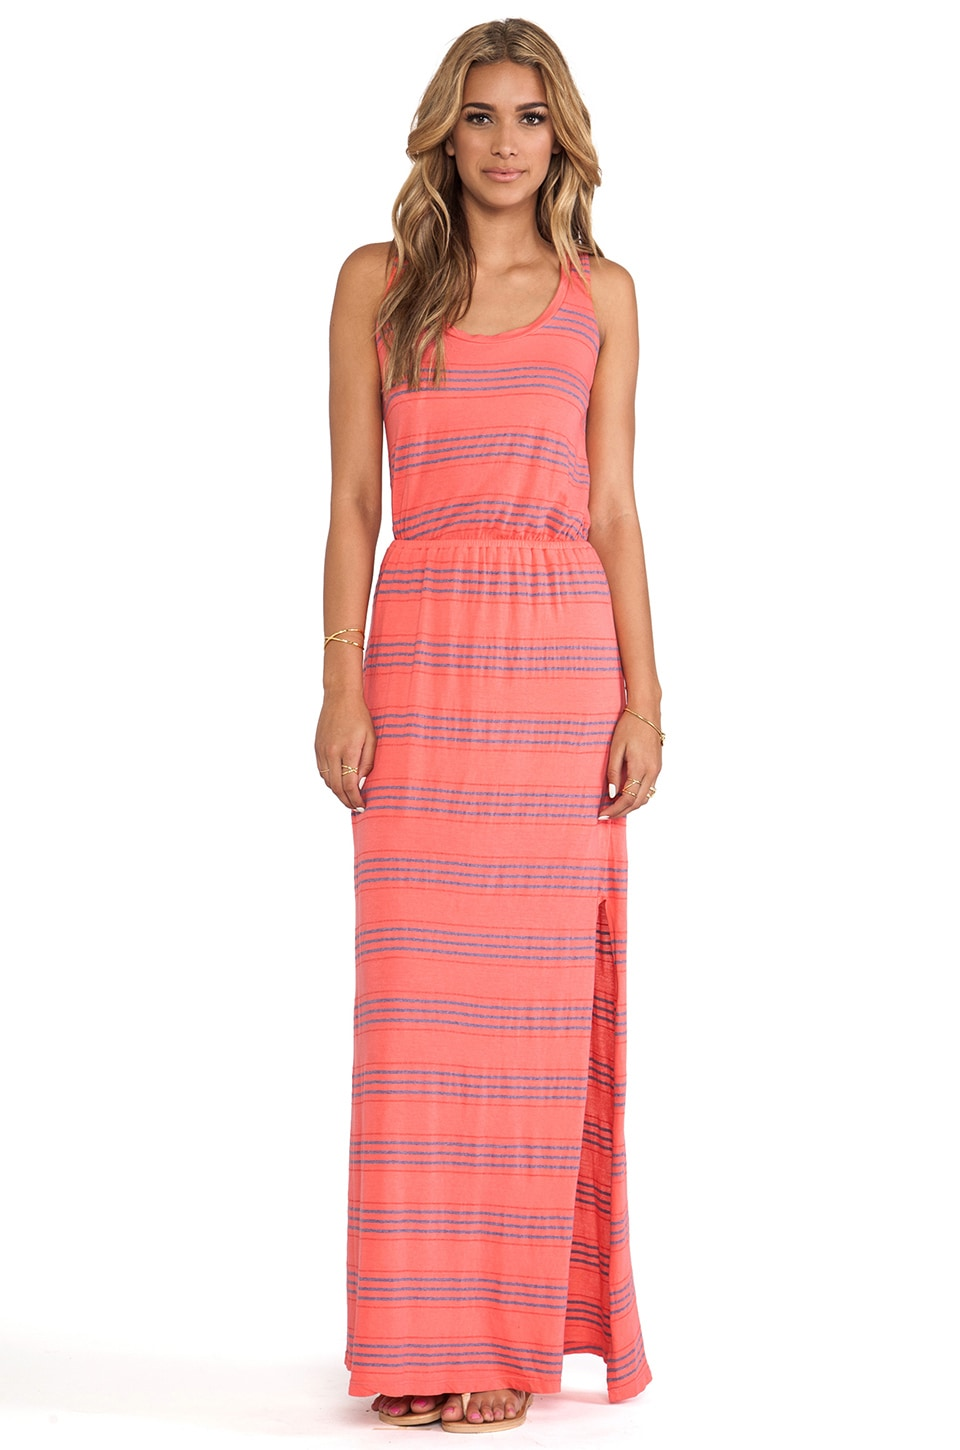 Splendid Maxi Dress in Coral Pink